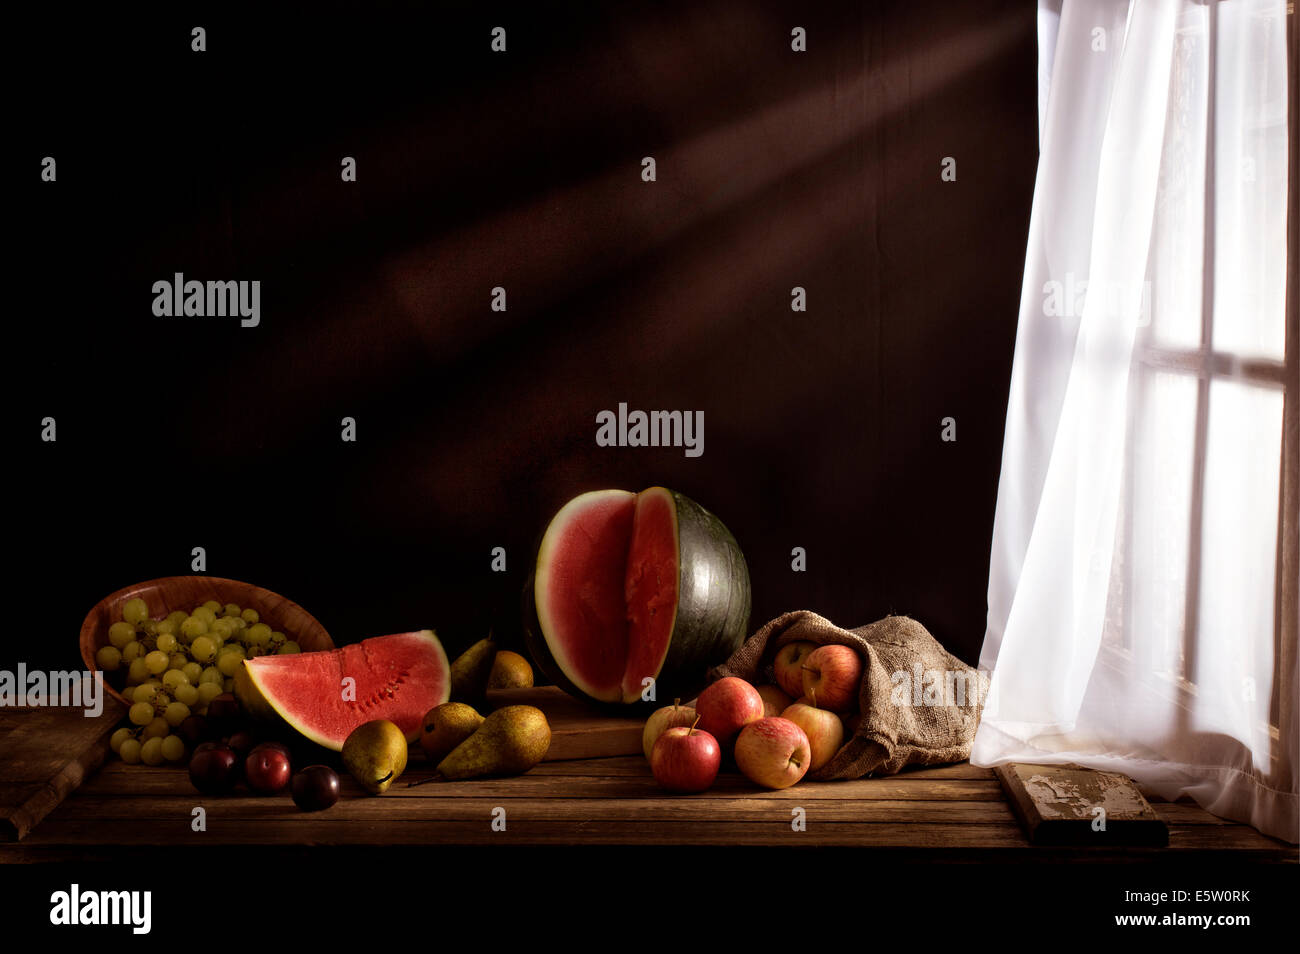 Moody still life of various fruits illuminated by a lace curtain window - Stock Image